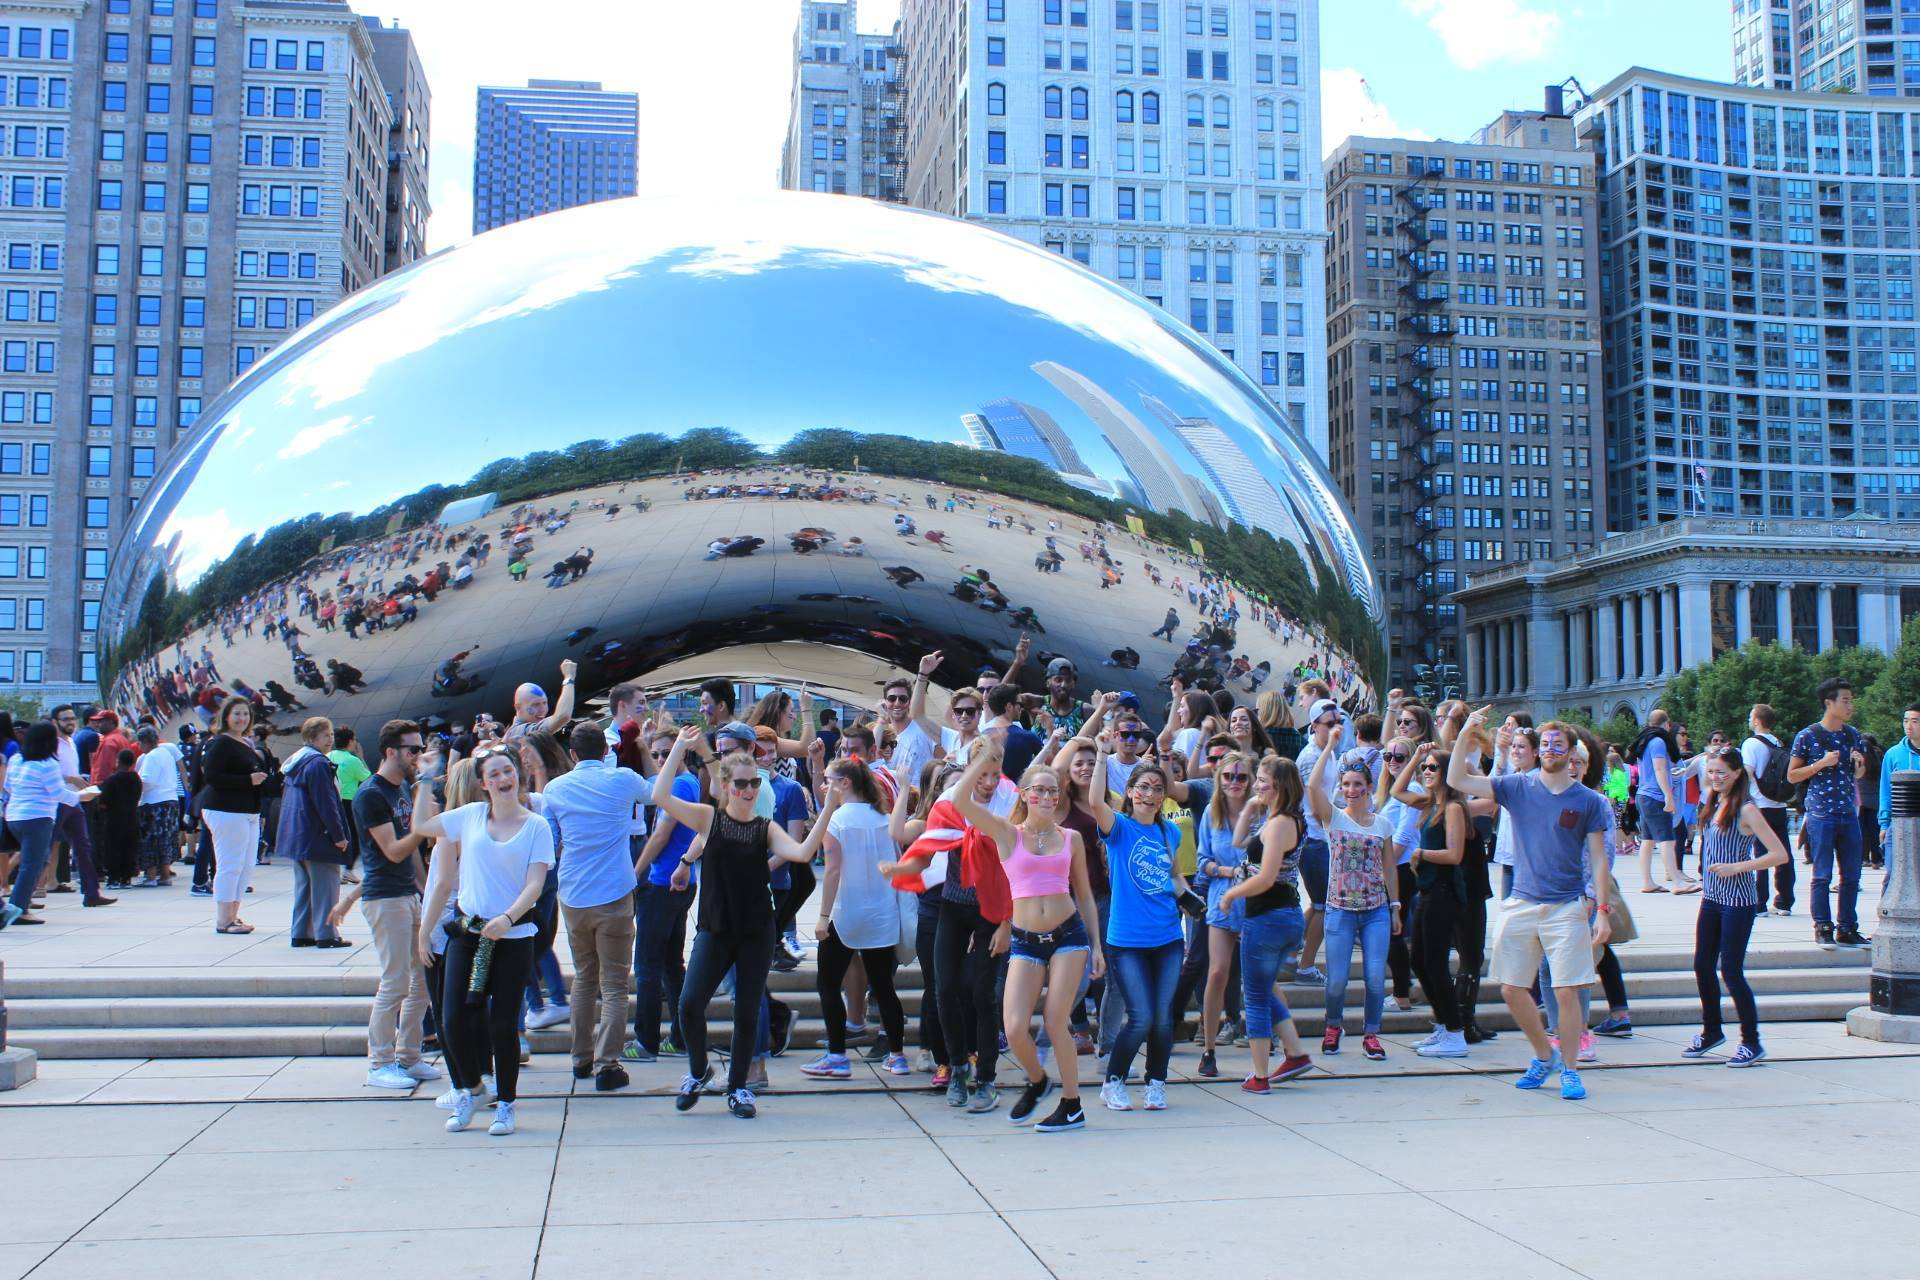 30 Totally Free Things to Do in Chicago